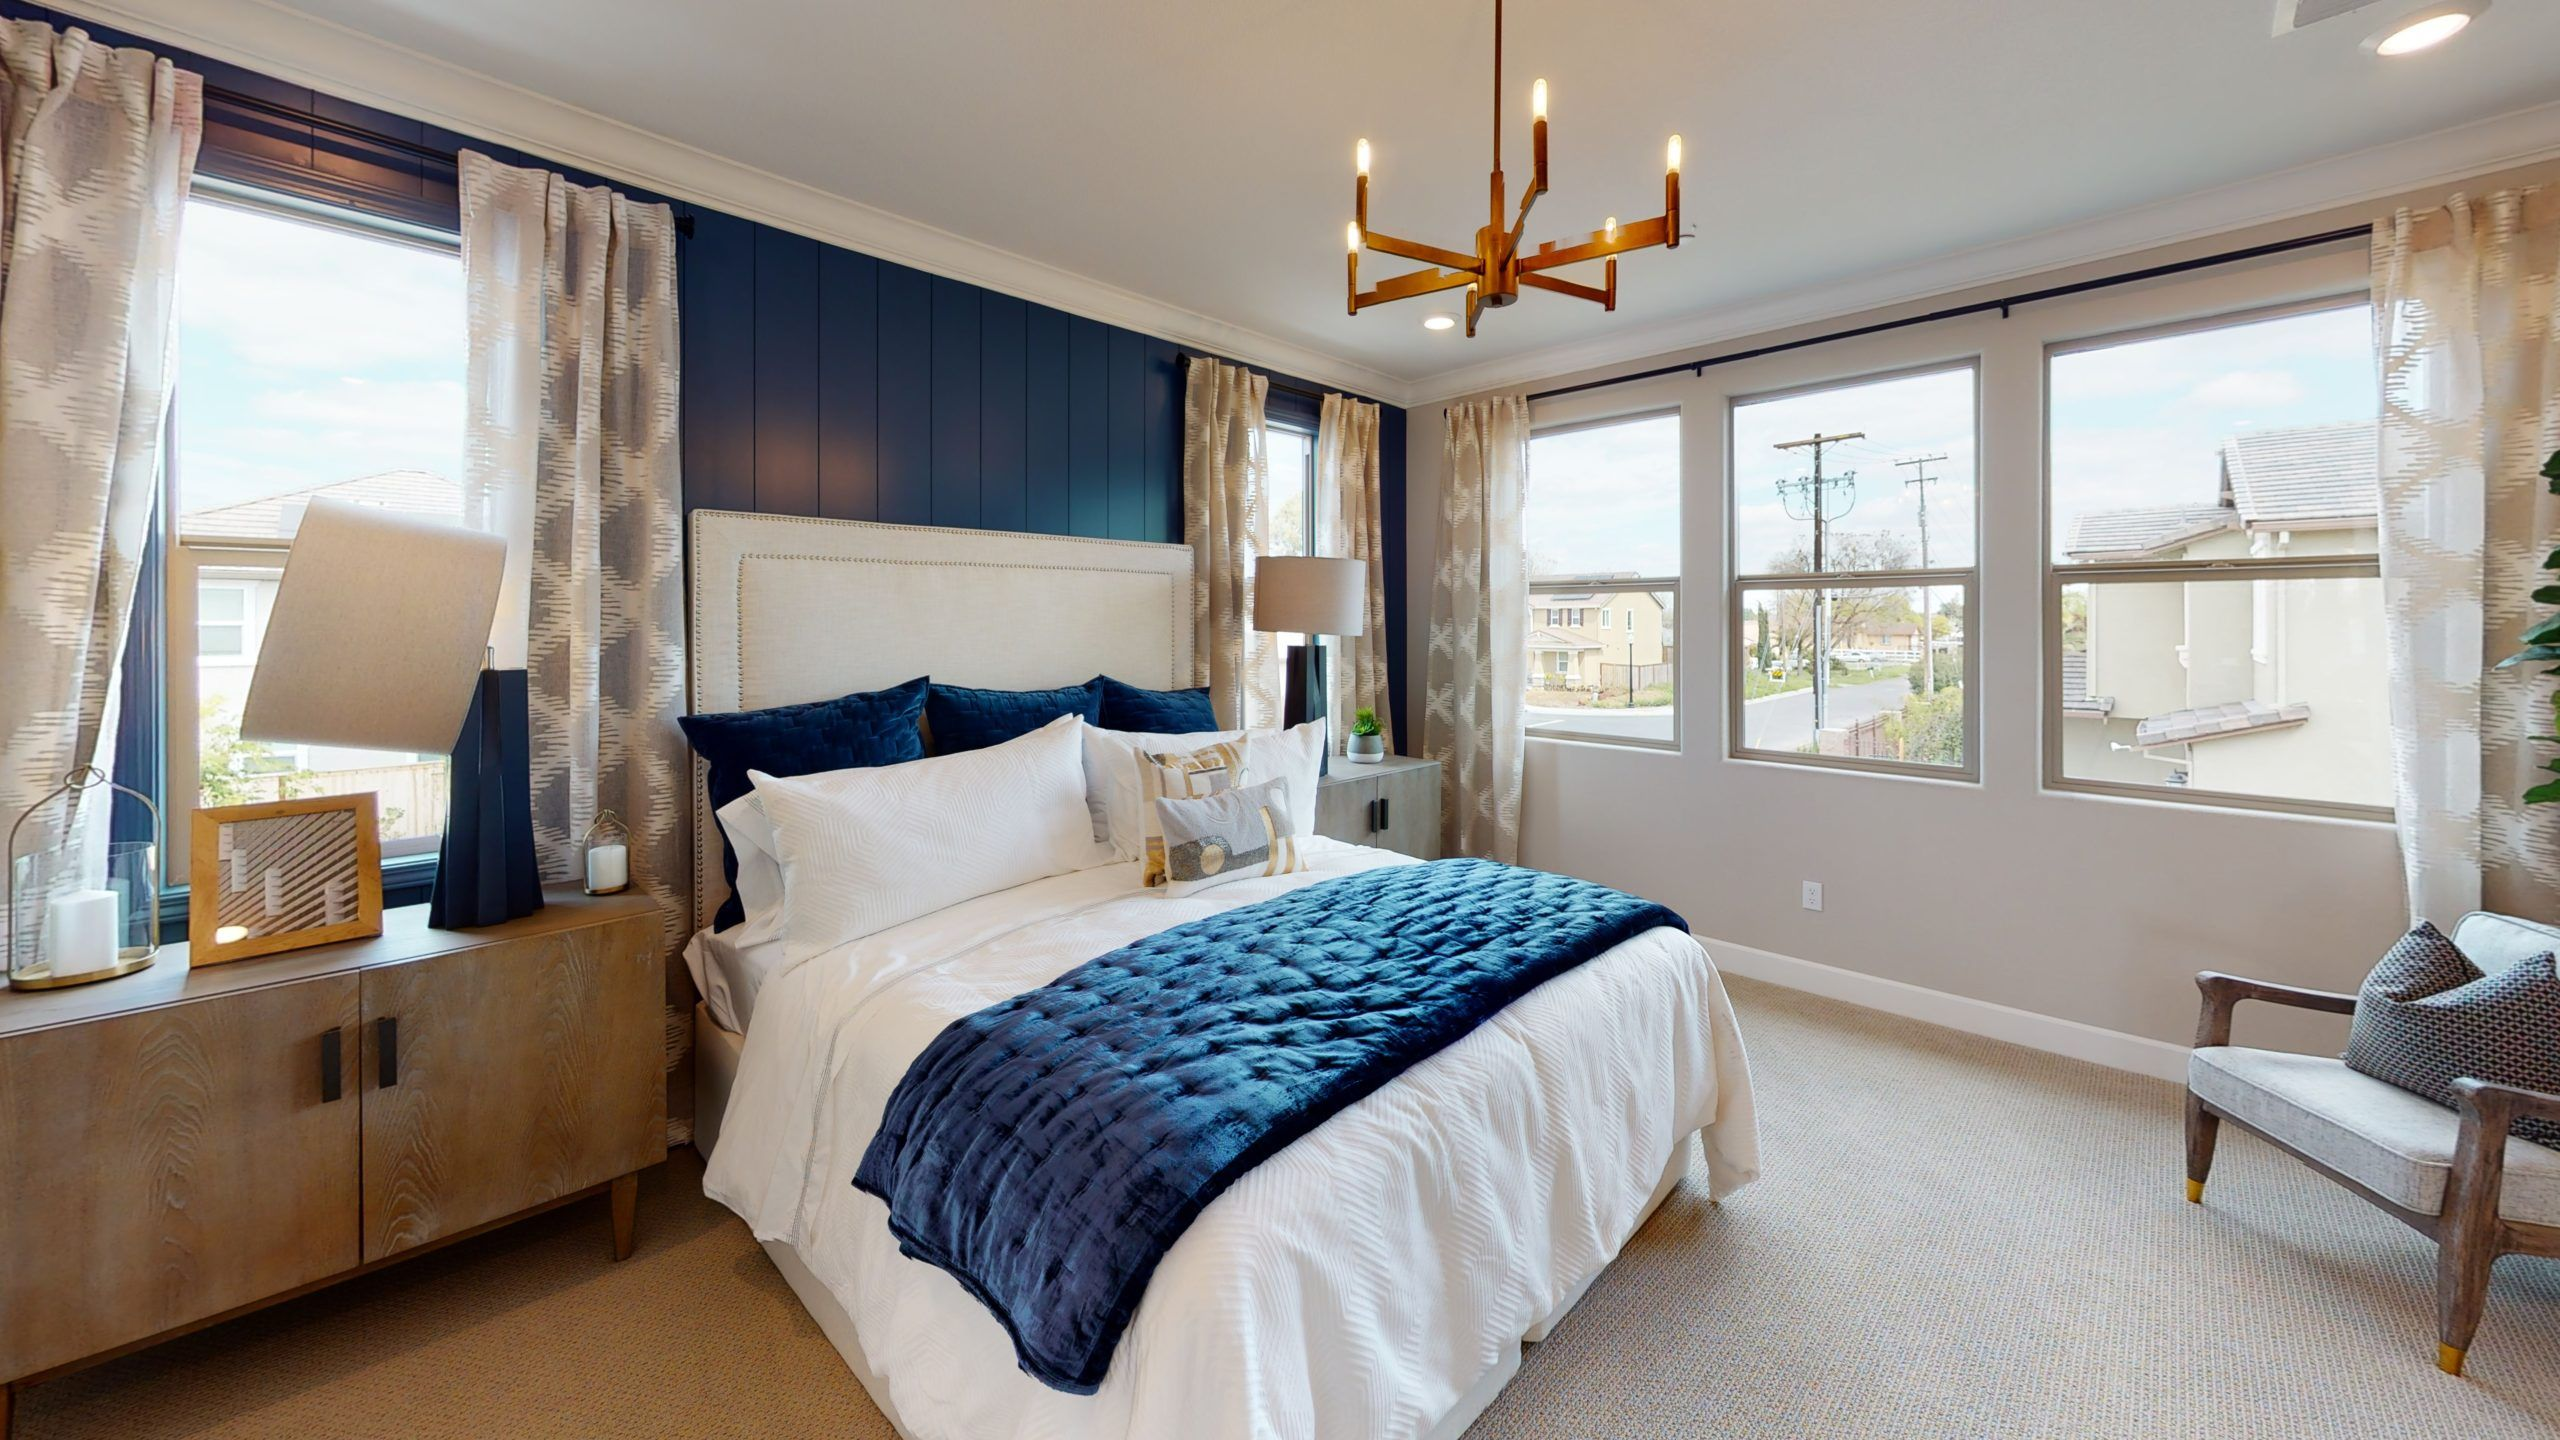 Bedroom featured in the Residence 4 By Next New Homes Group in Sacramento, CA